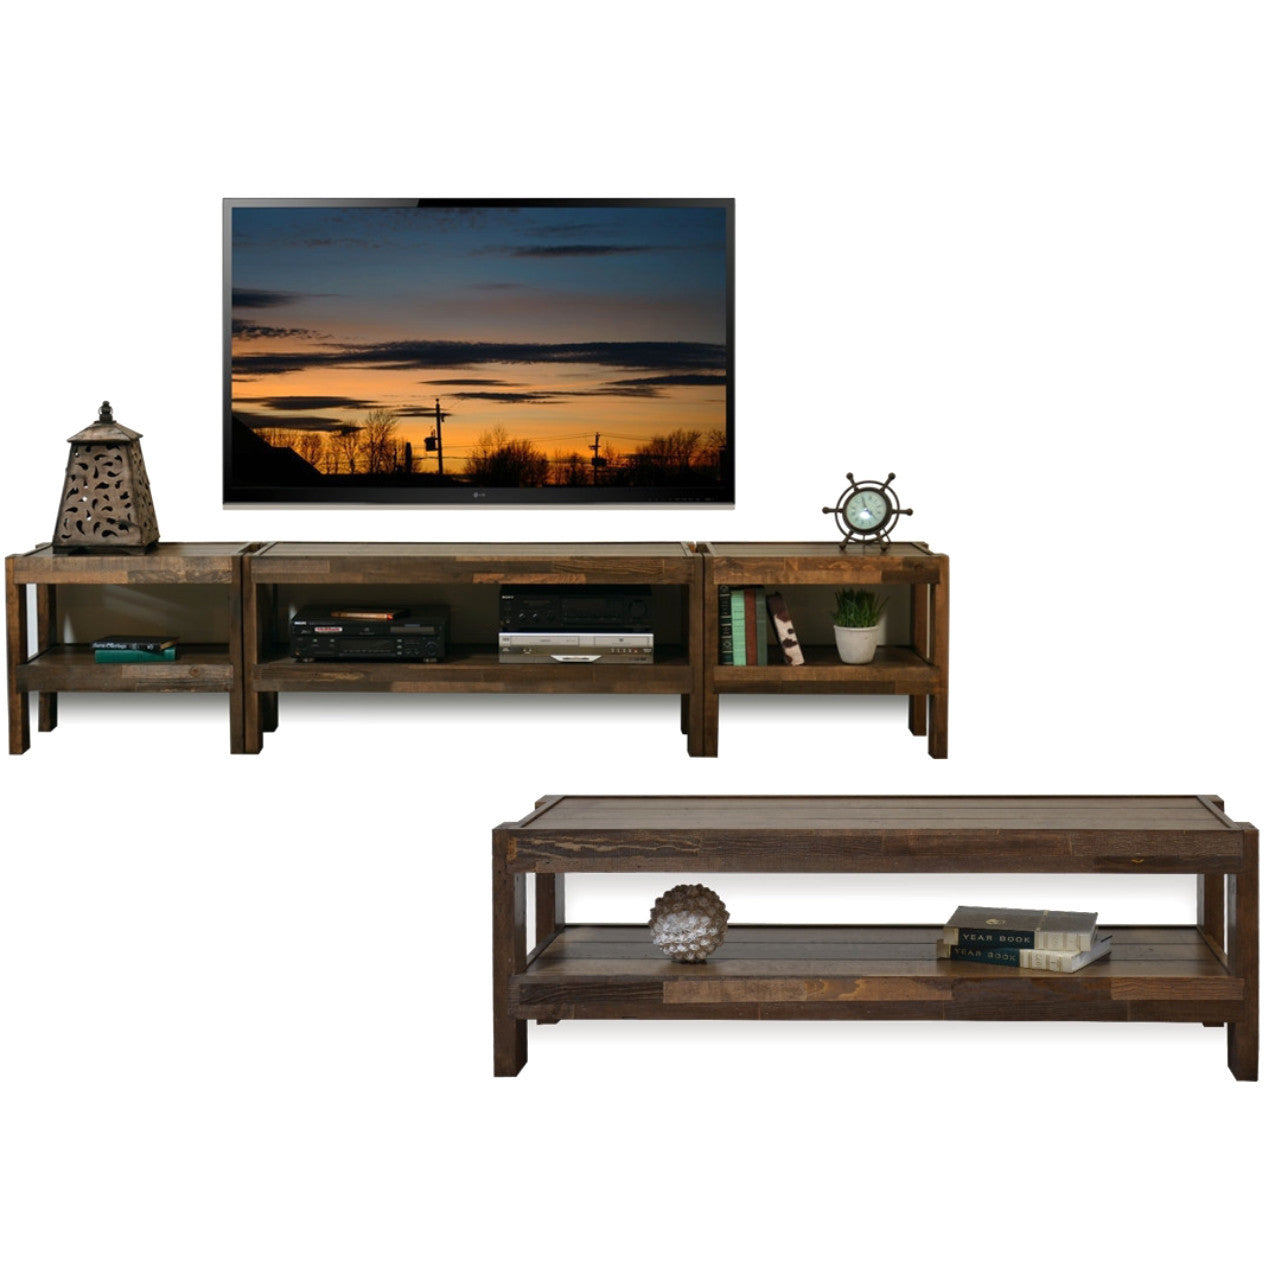 Rustic Reclaimed Pallet Wood Style Entertainment Center TV Stand ...